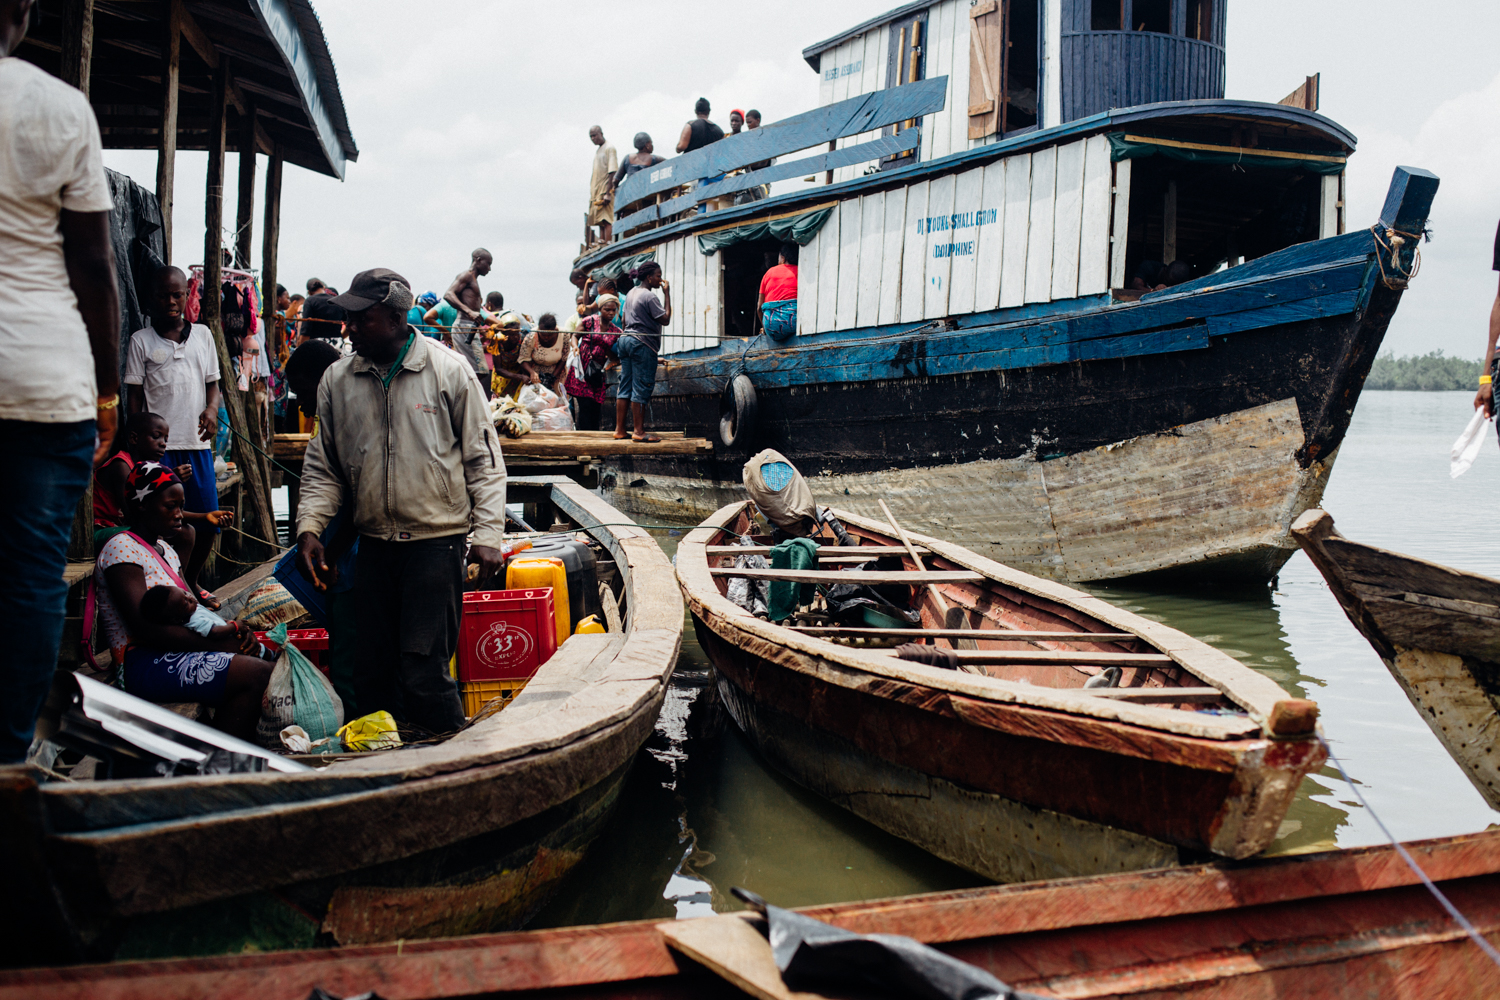 Boats at the floating market in Koko, Niger Delta